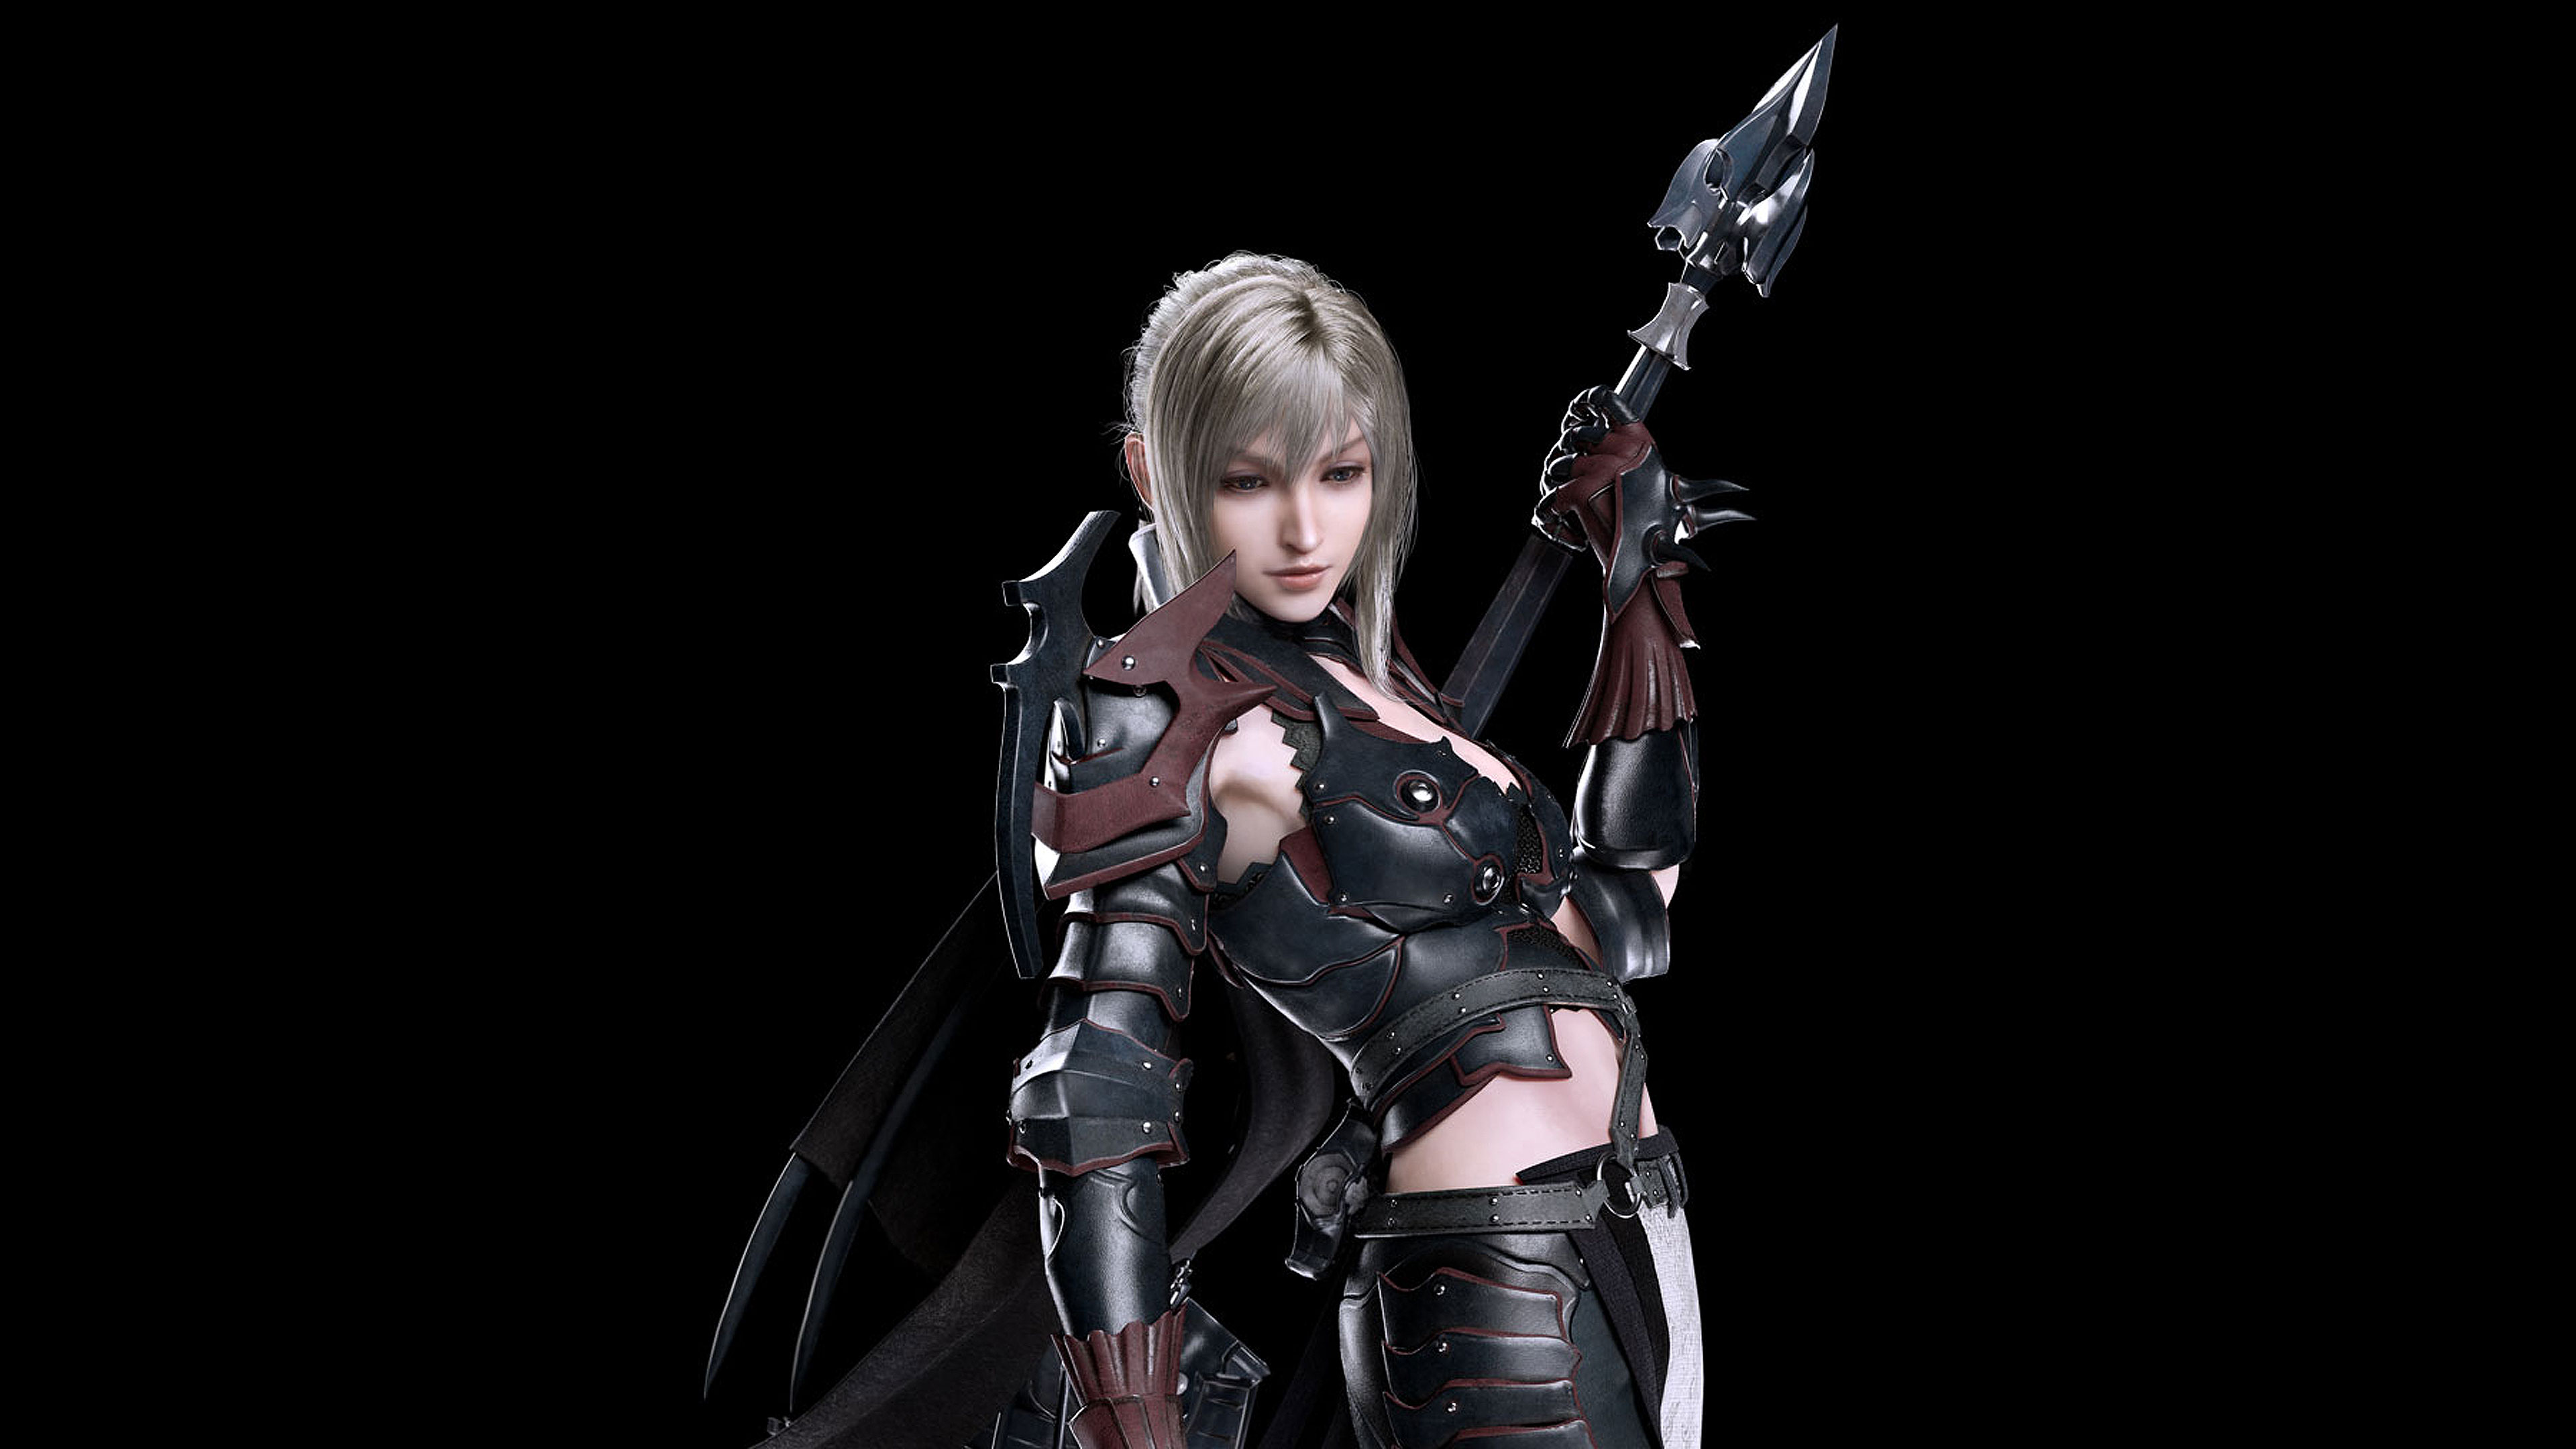 Aranea Highwind Final Fantasy Xv Hd Games 4k Wallpapers Images